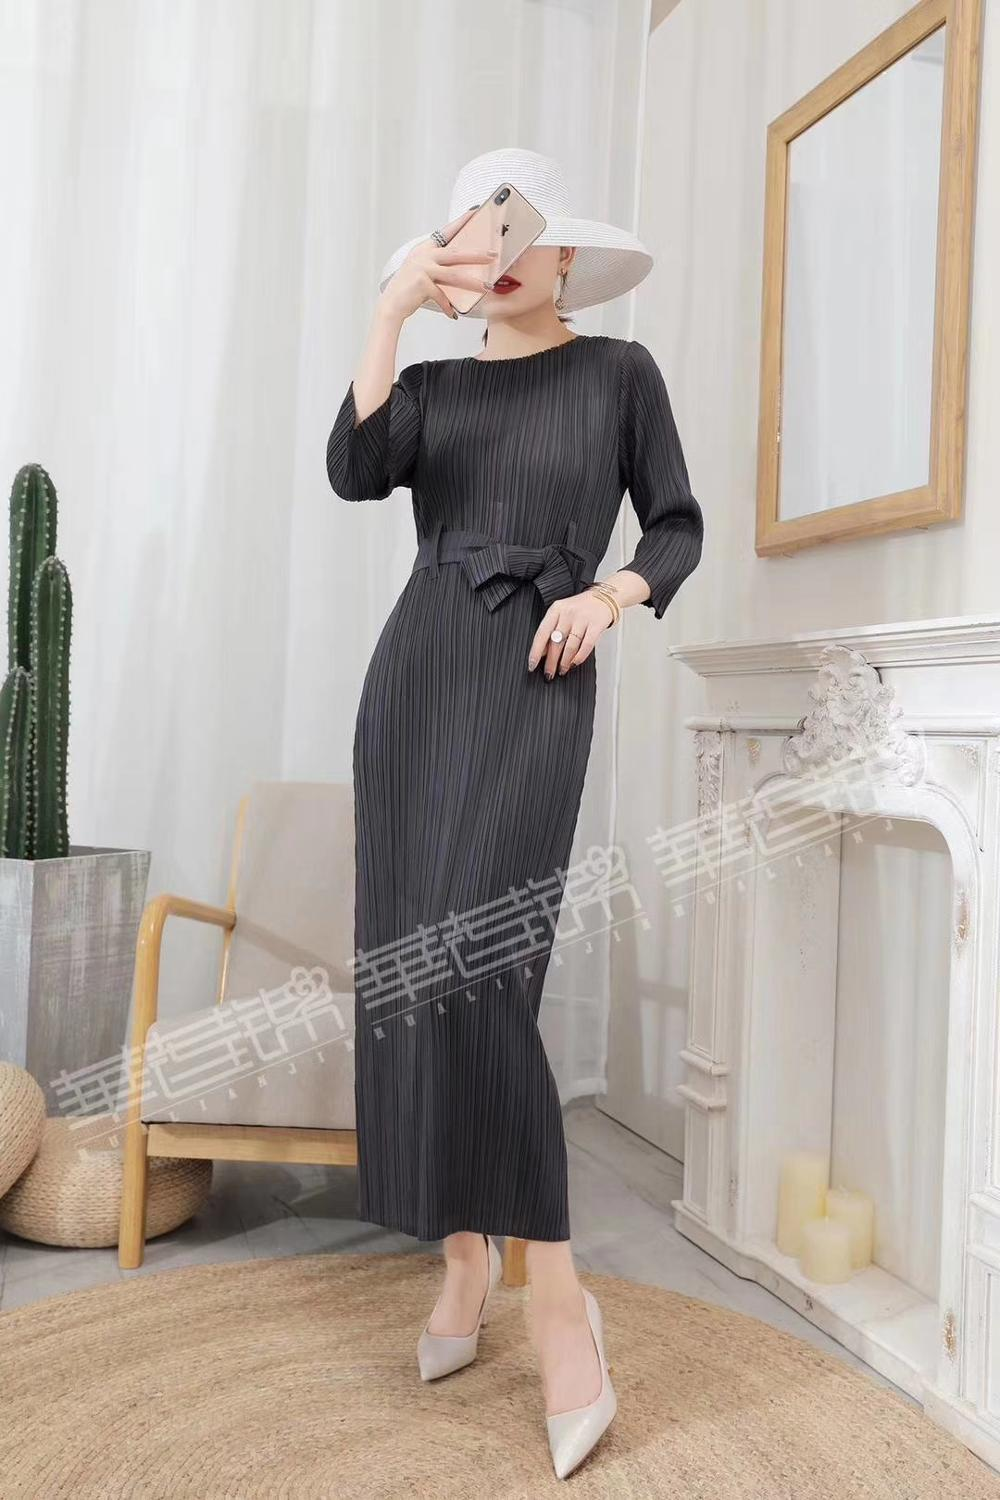 HOT SELLING Miyake fold  classic three quarter dress 0-neck solid lace-up long dress  IN STOCK